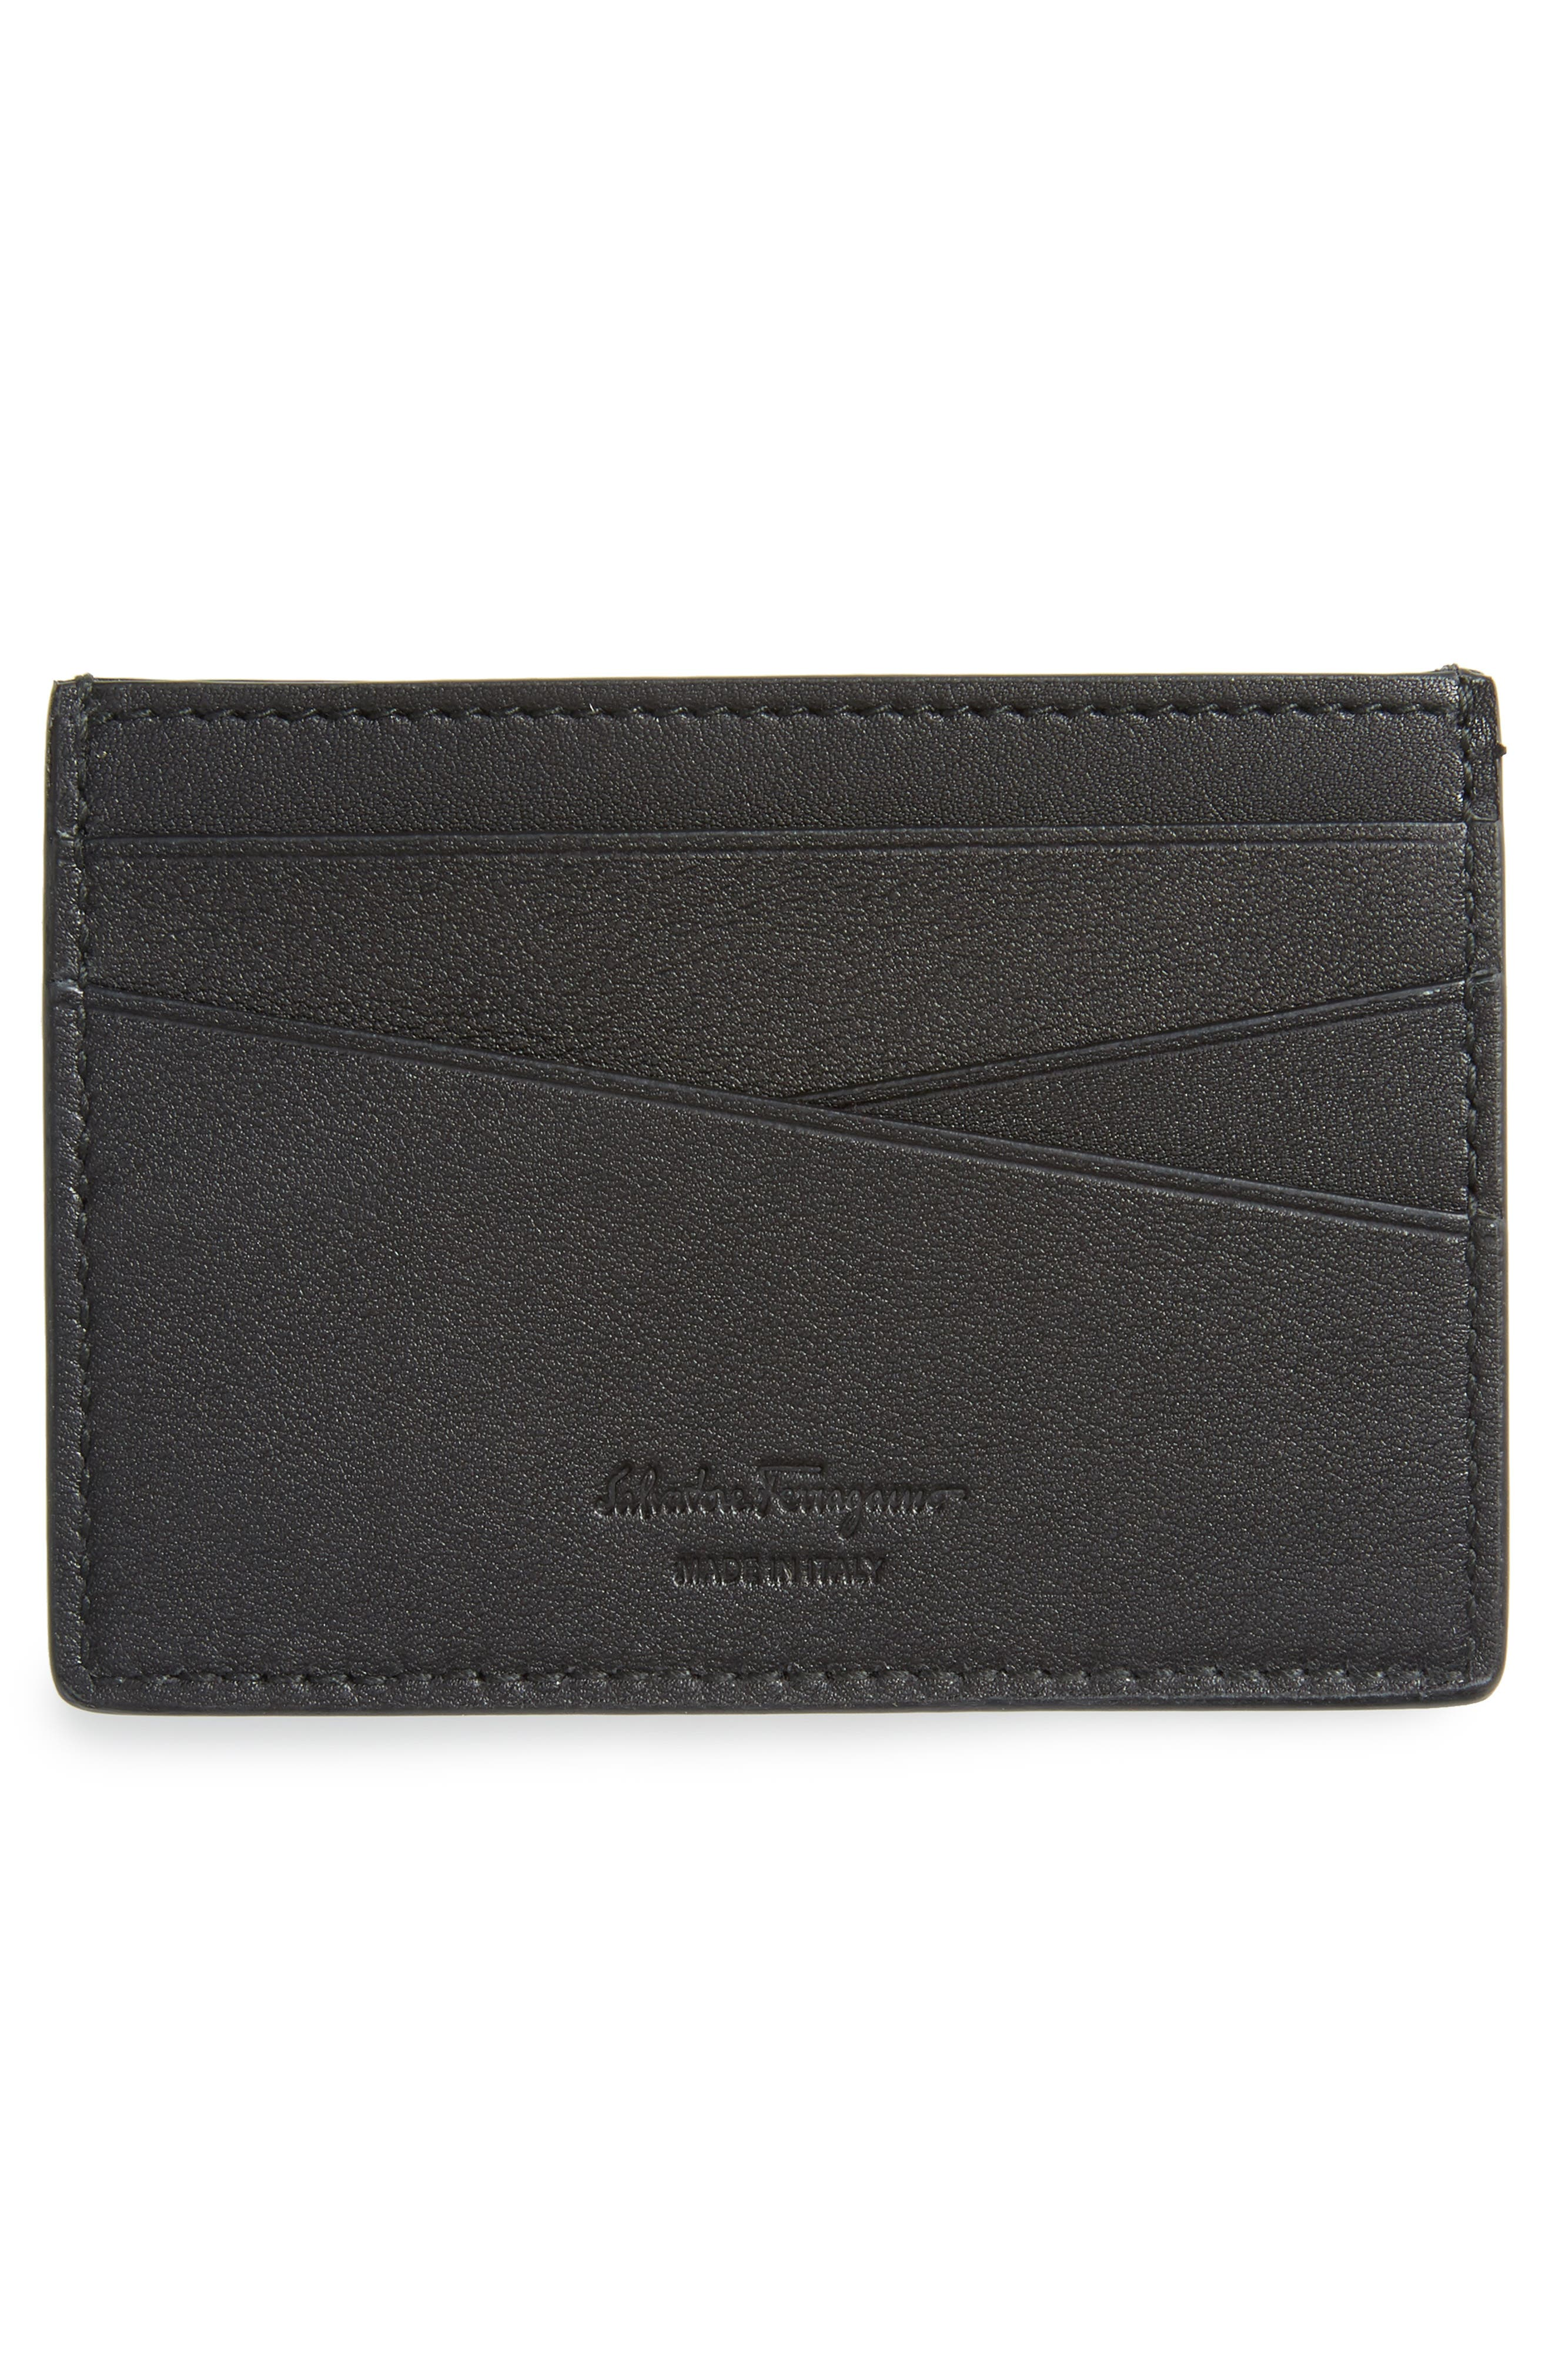 Calfskin Leather Card Case,                             Alternate thumbnail 2, color,                             Black